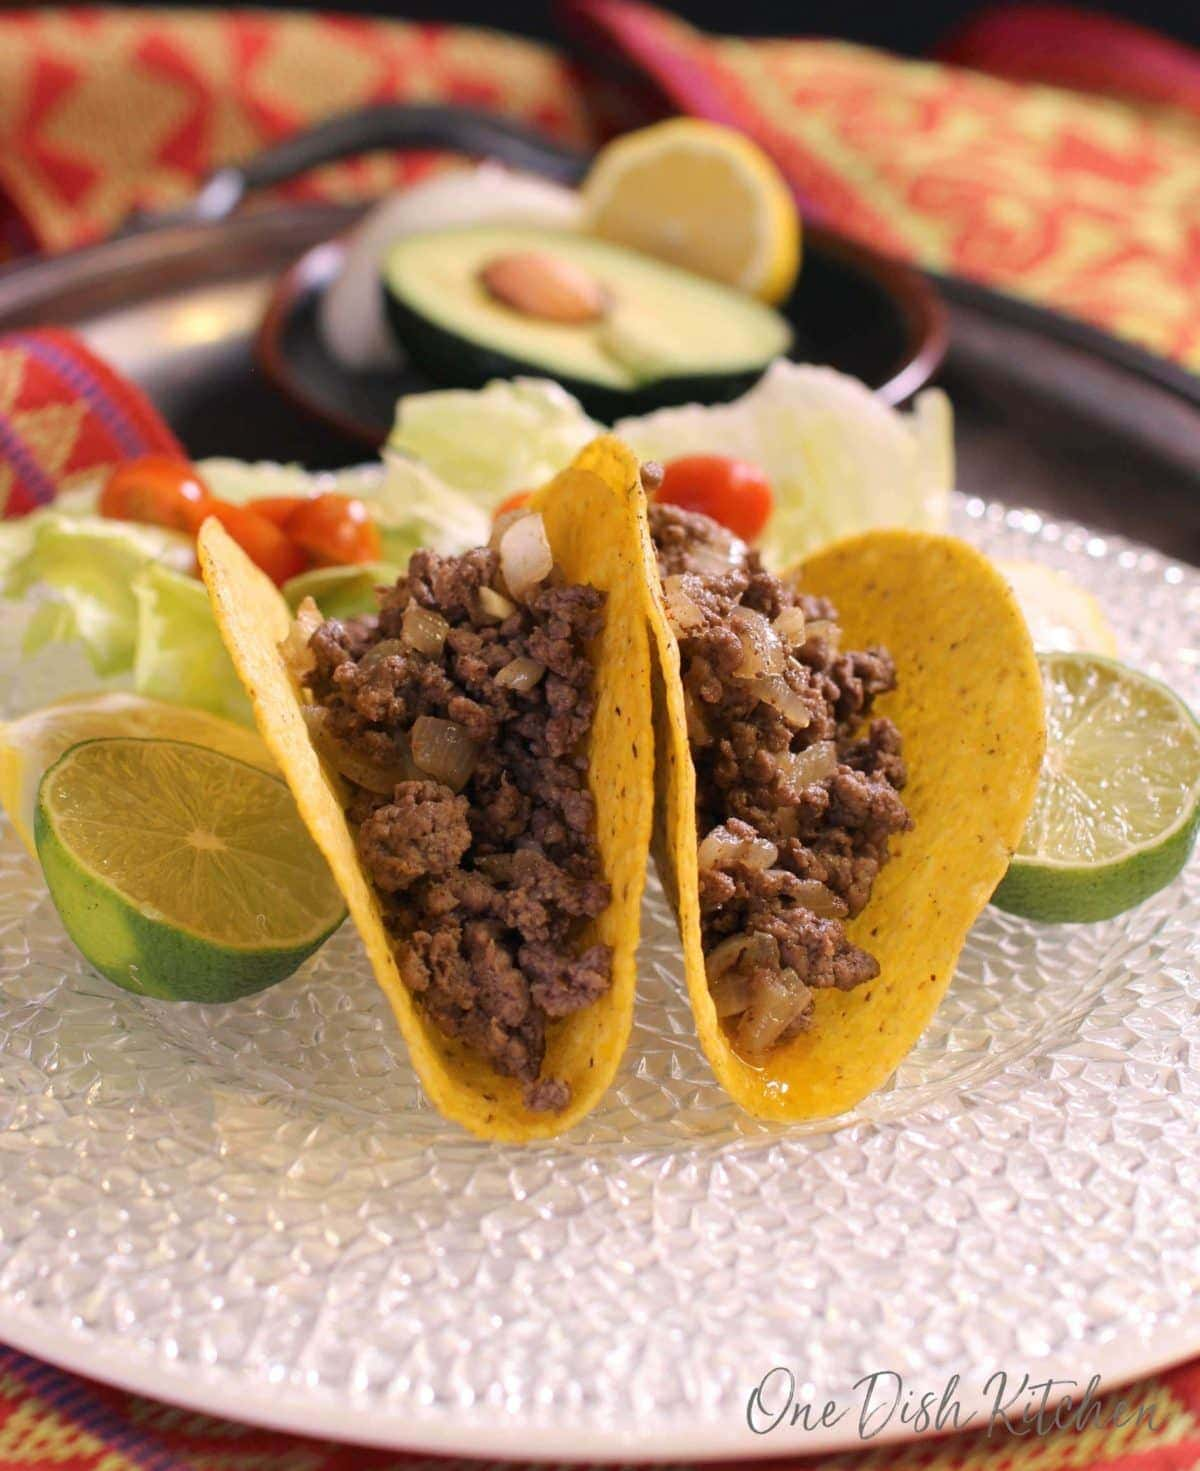 Two taco shells on a plate filled with ground beef and onions with lime halves on both sides of the tacos and a small salad on a metal tray with small plate of half of an avocado and half of a lemon in the background